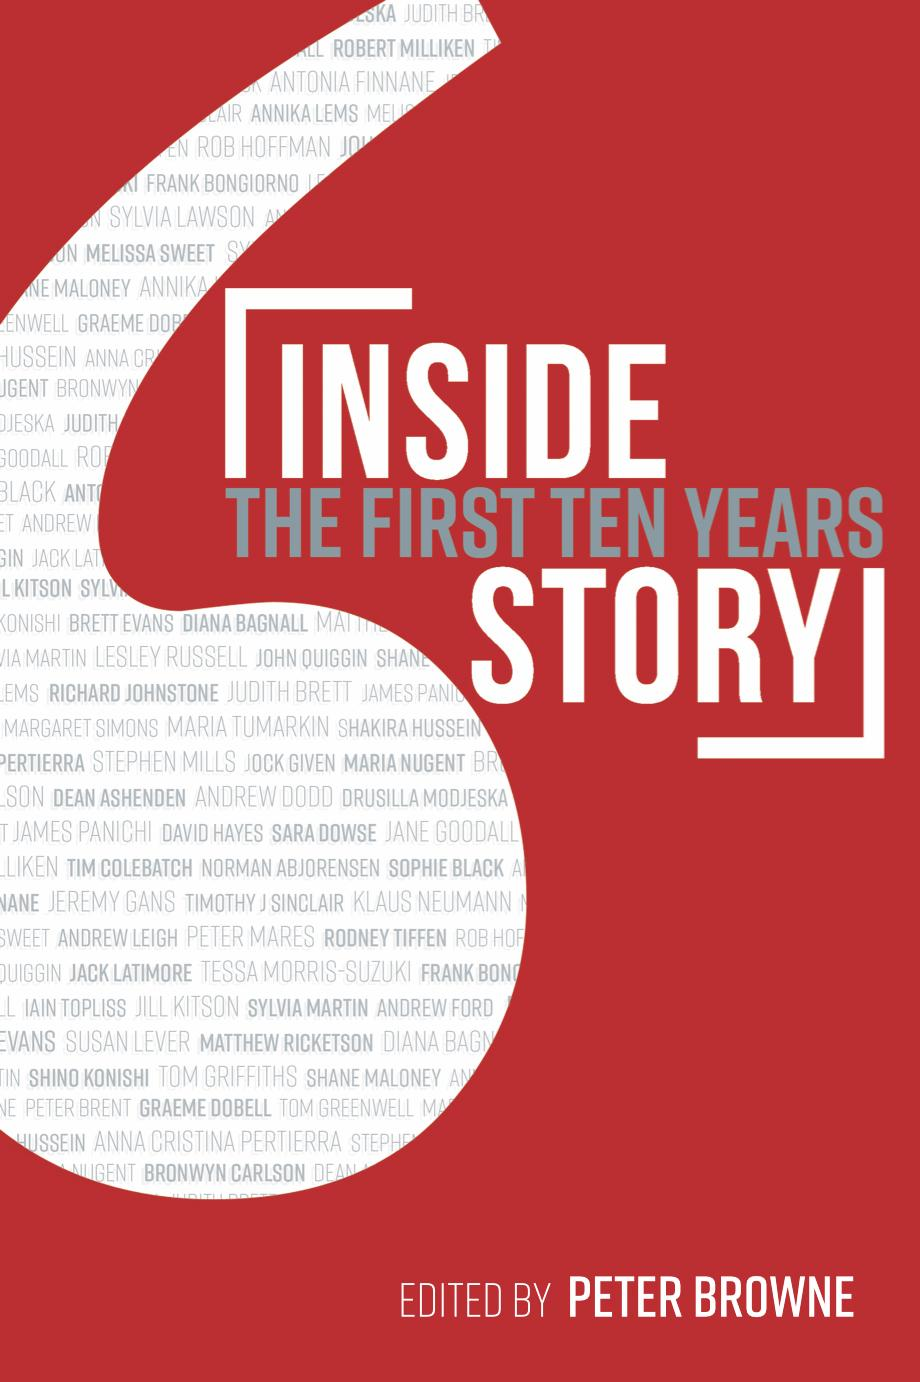 Inside Story: The First Ten Years